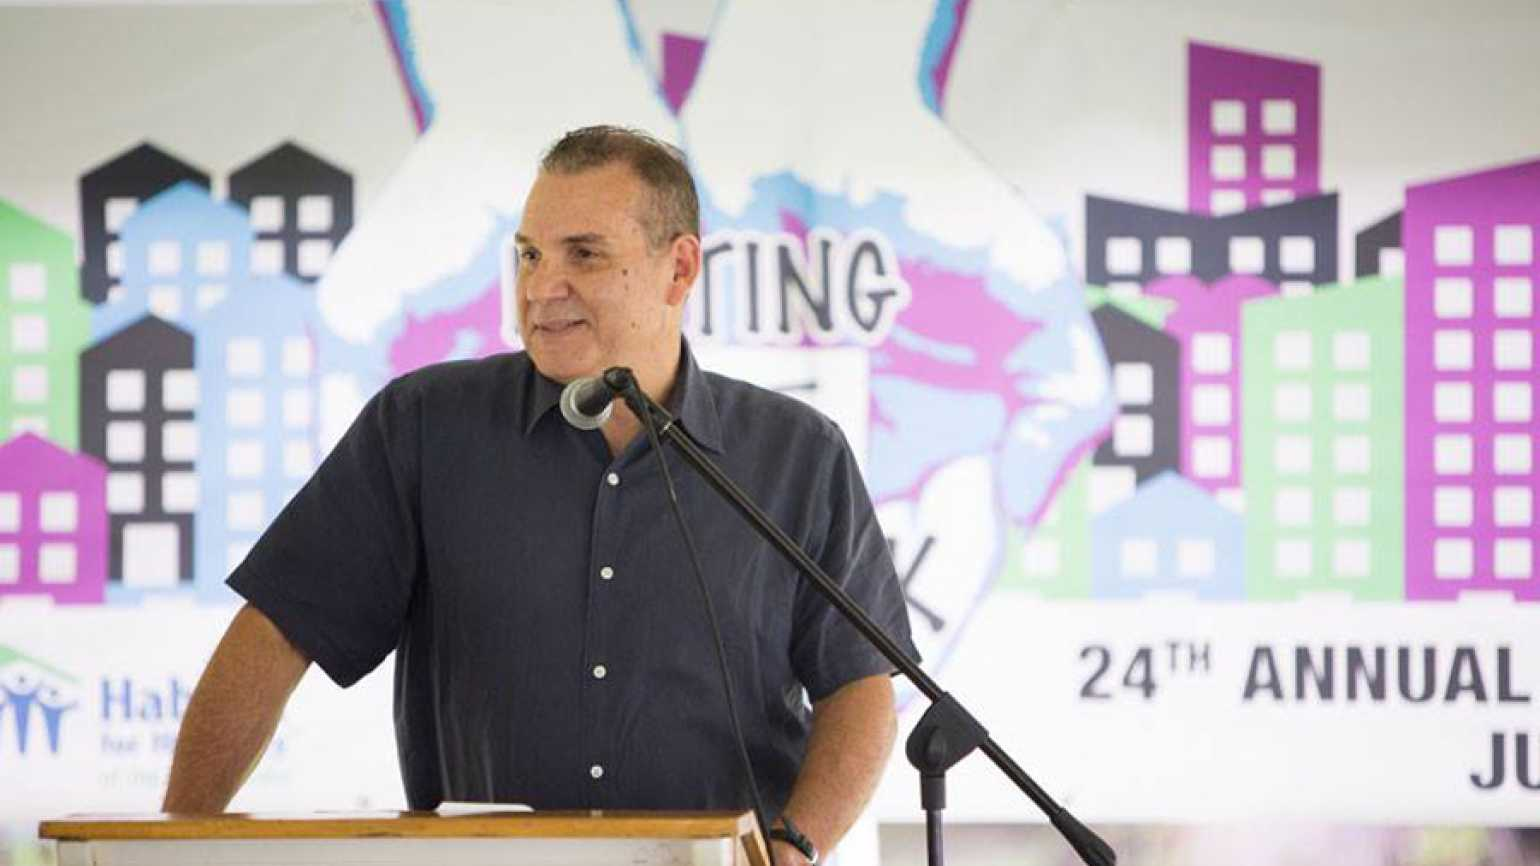 Pablo Diaz speaks to Habitat for Humanity Putting Faith to Work